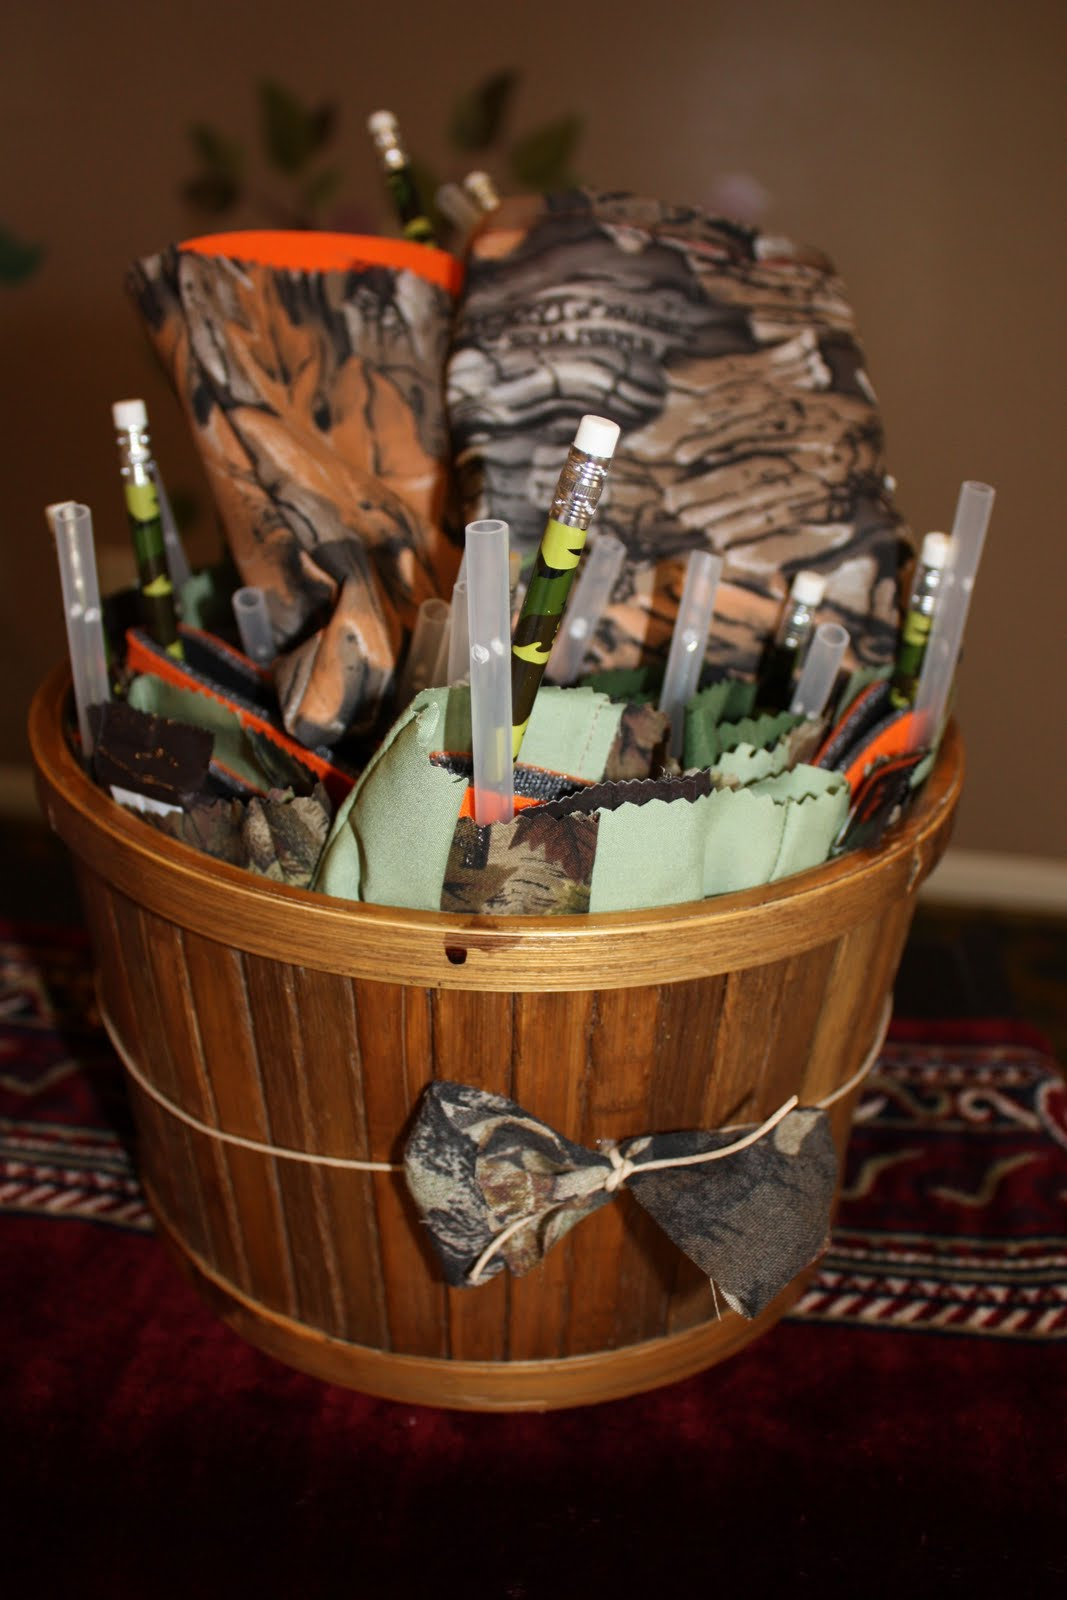 Hunting birthday party decorations party ideas deer hunting party - Hucks Happenings Happy Birthday Cyle A Hunting Party